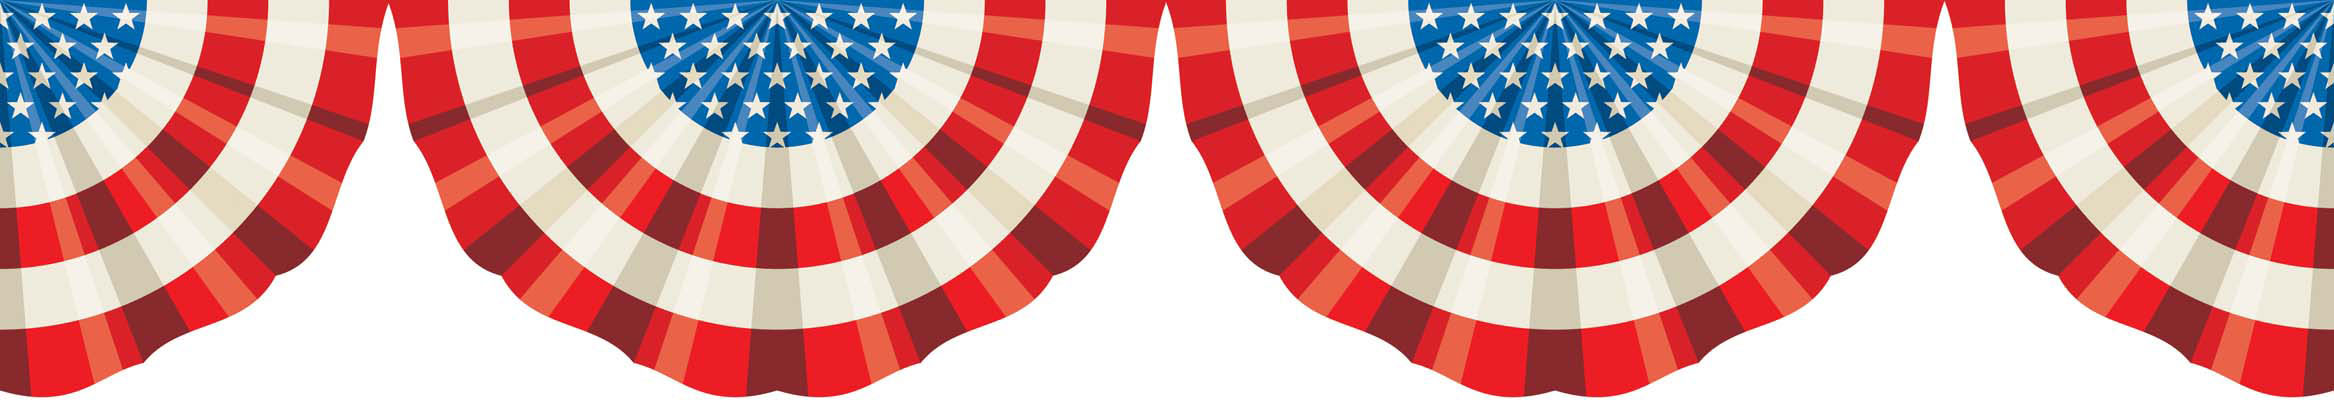 Old Fashioned Patriotic Bunting Png - Old Fashioned Patriotic Bunting Clipart & Clip Art Images #9548 ...